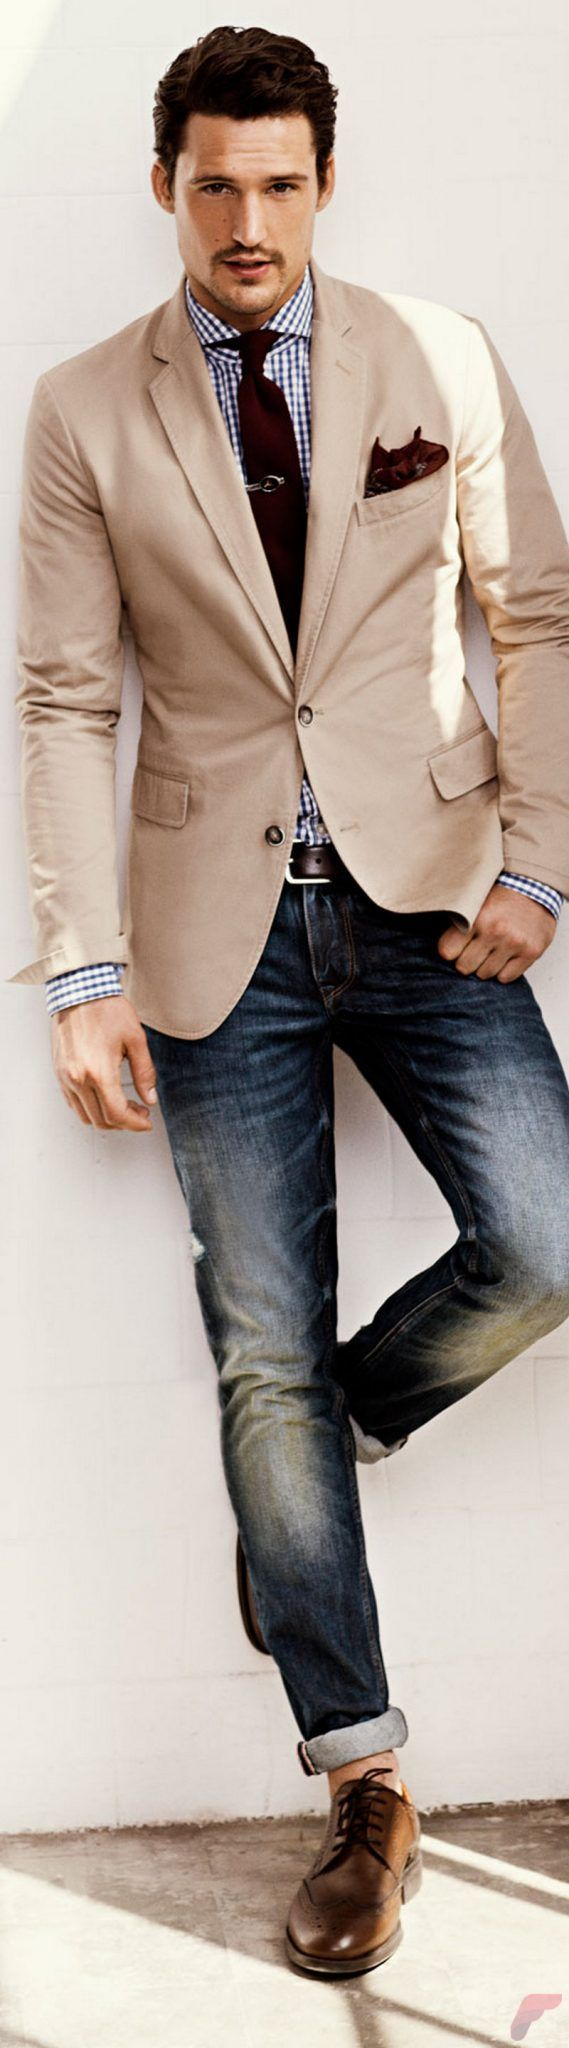 Guide for men who wants to wear sport coat with jeans fashion